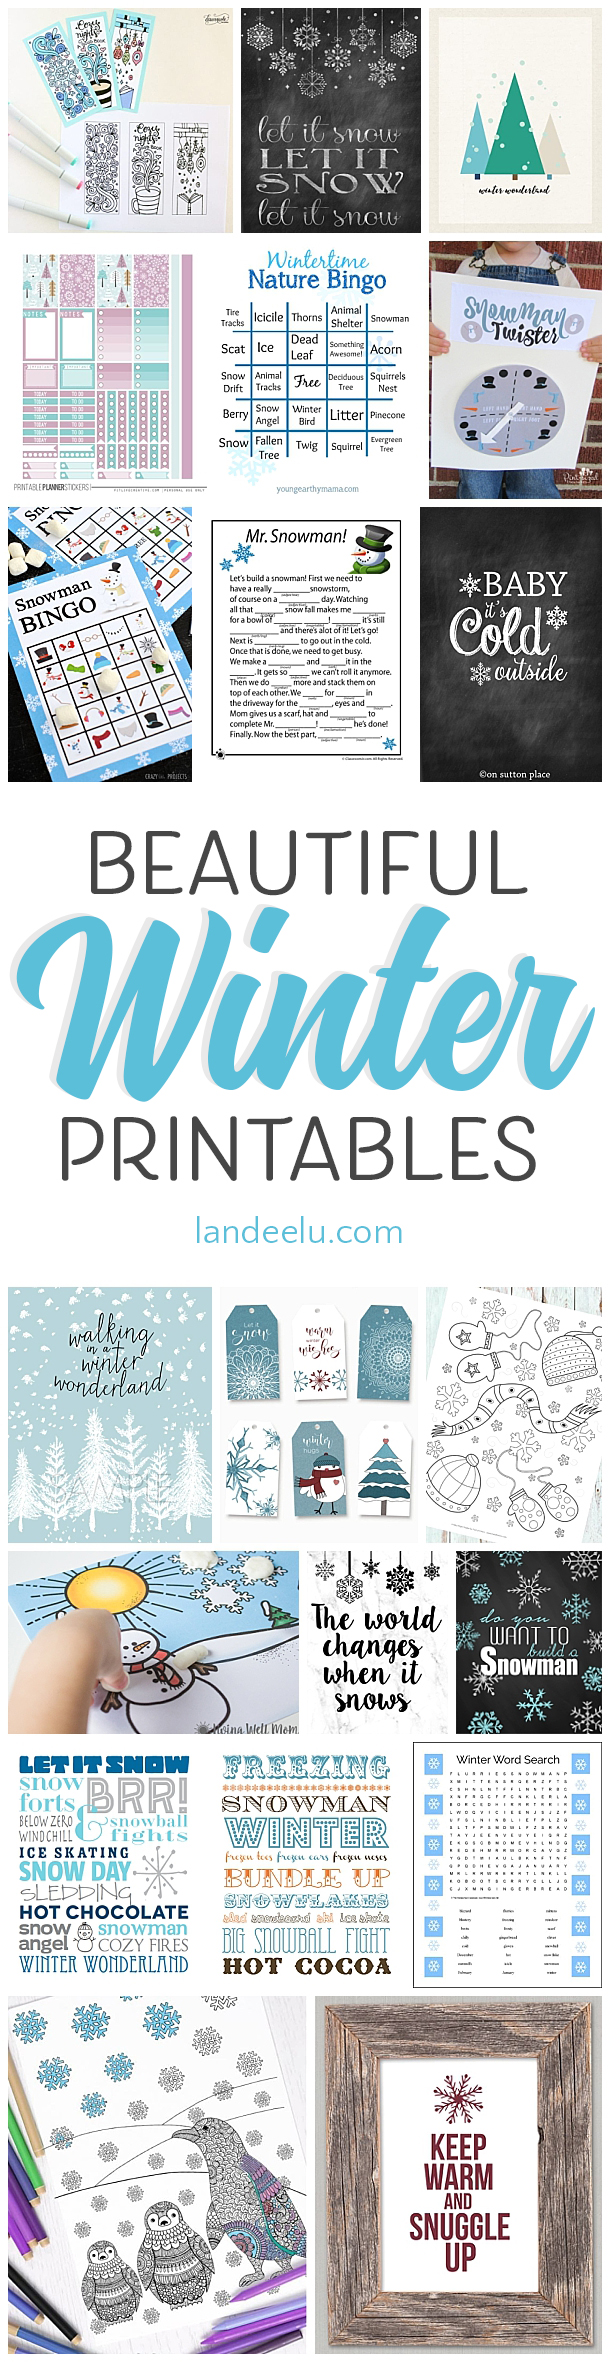 Love these winter theme printables! Too fun!